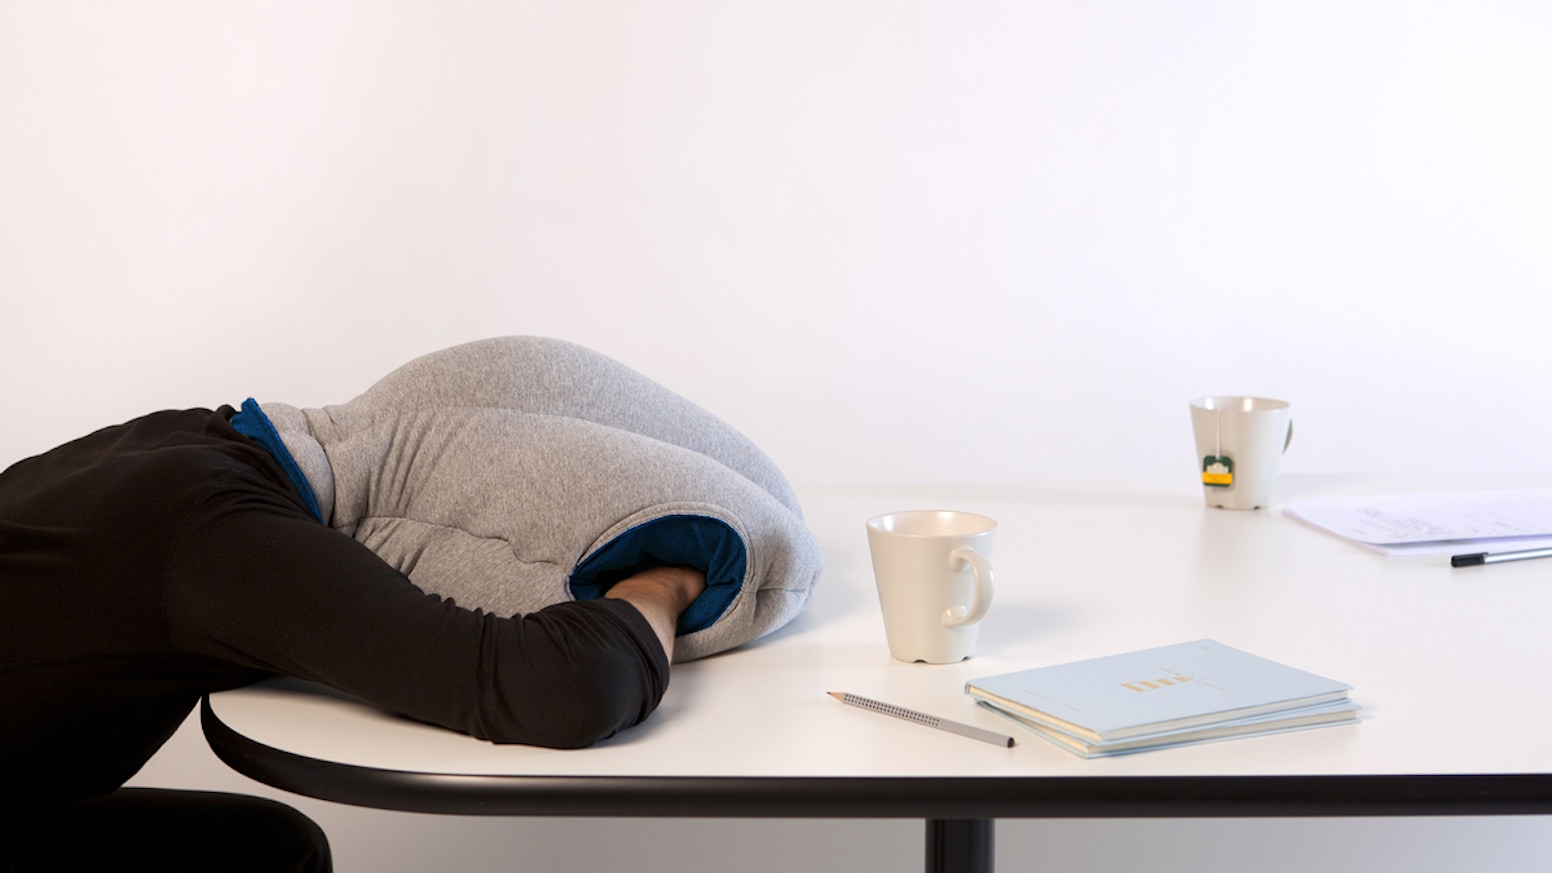 Ostrich Pillow Offers A Micro Environment In Which To Take Comfortable Nap The